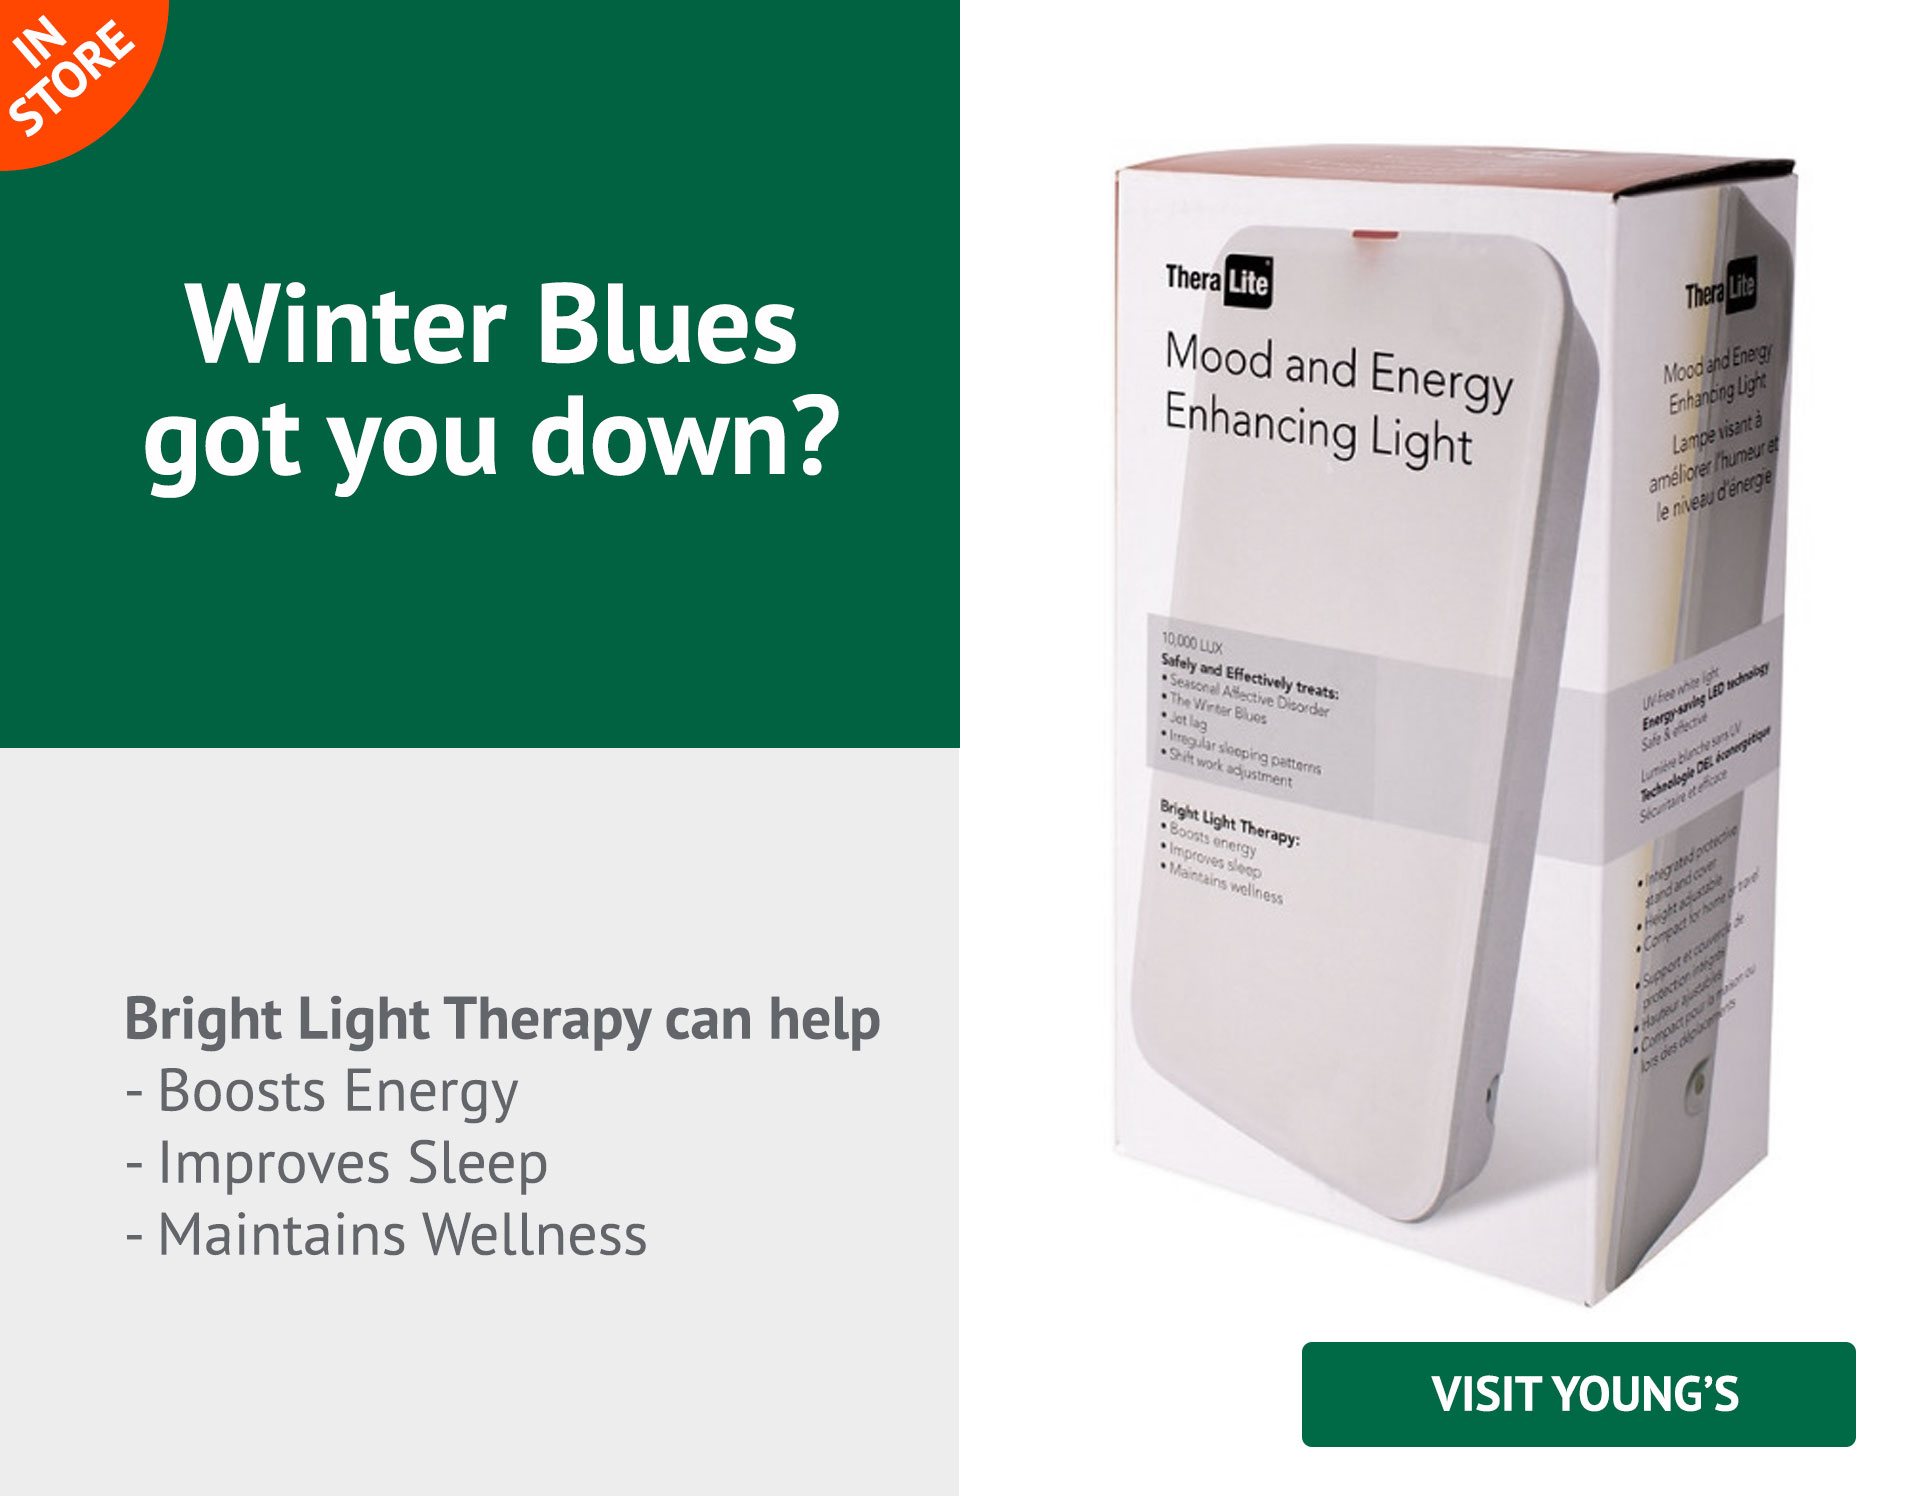 Bright Light Therapy can help  - Boosts Energy - Improves Sleep - Maintains Wellness